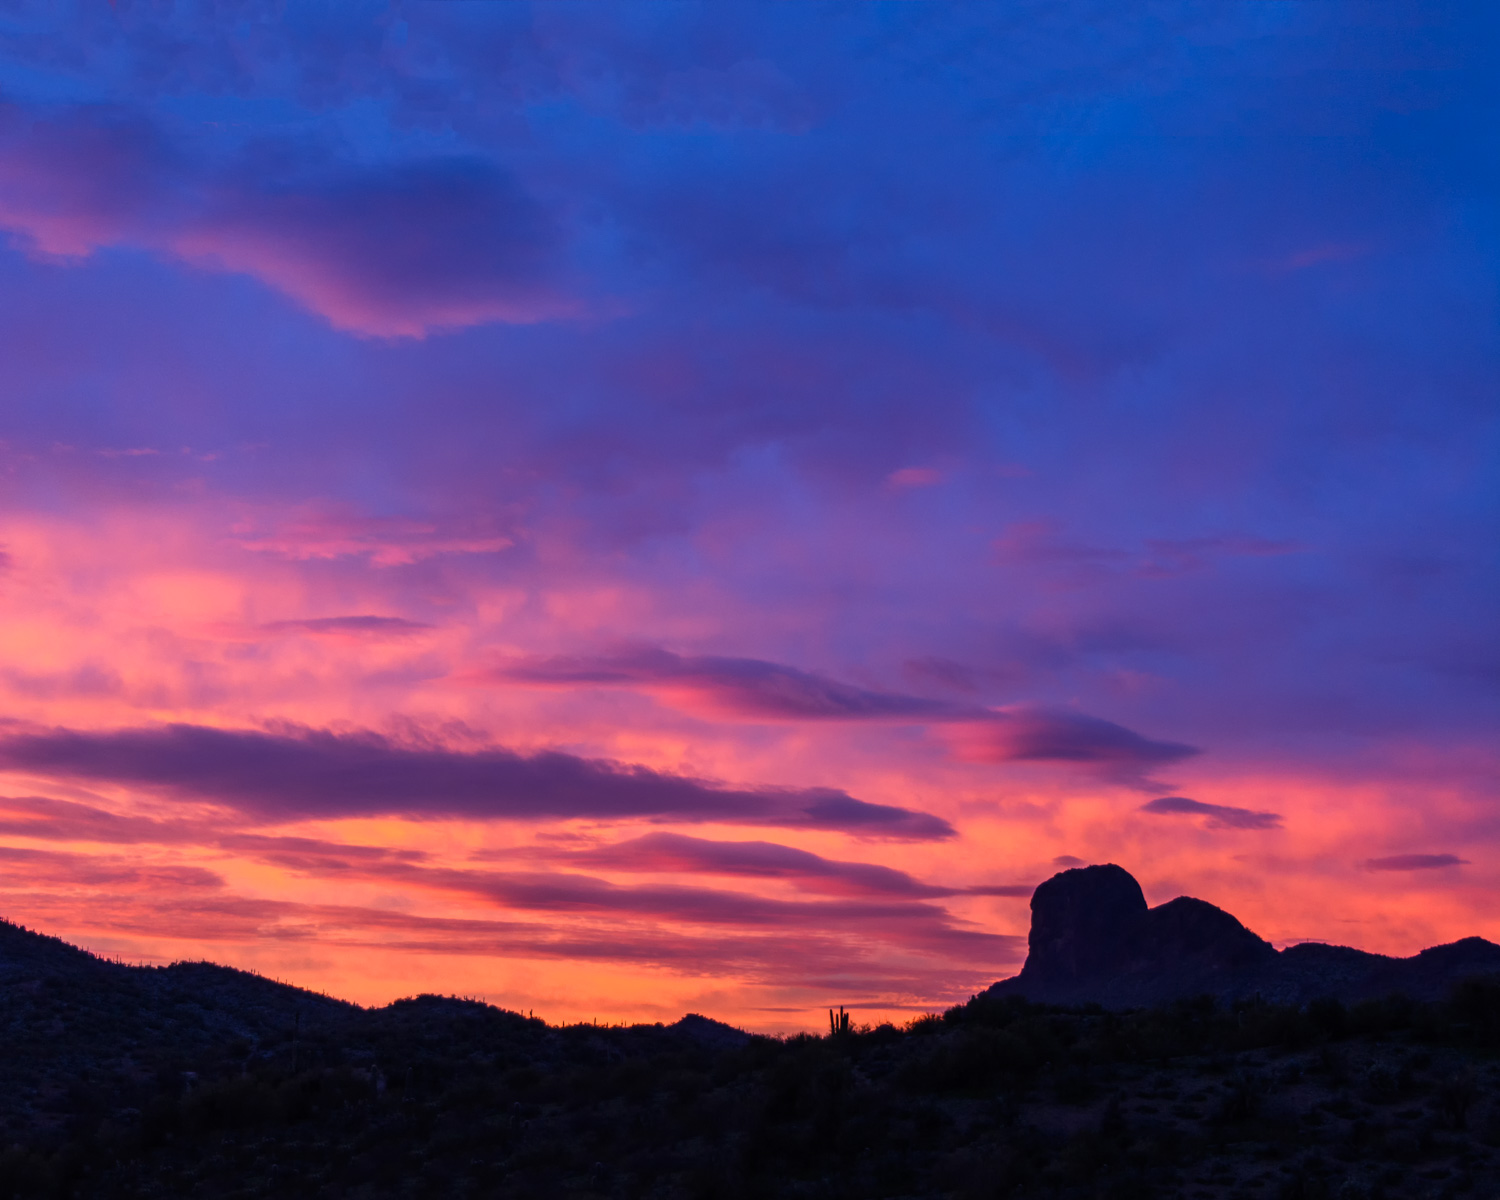 Sunrise over Vulture Peak